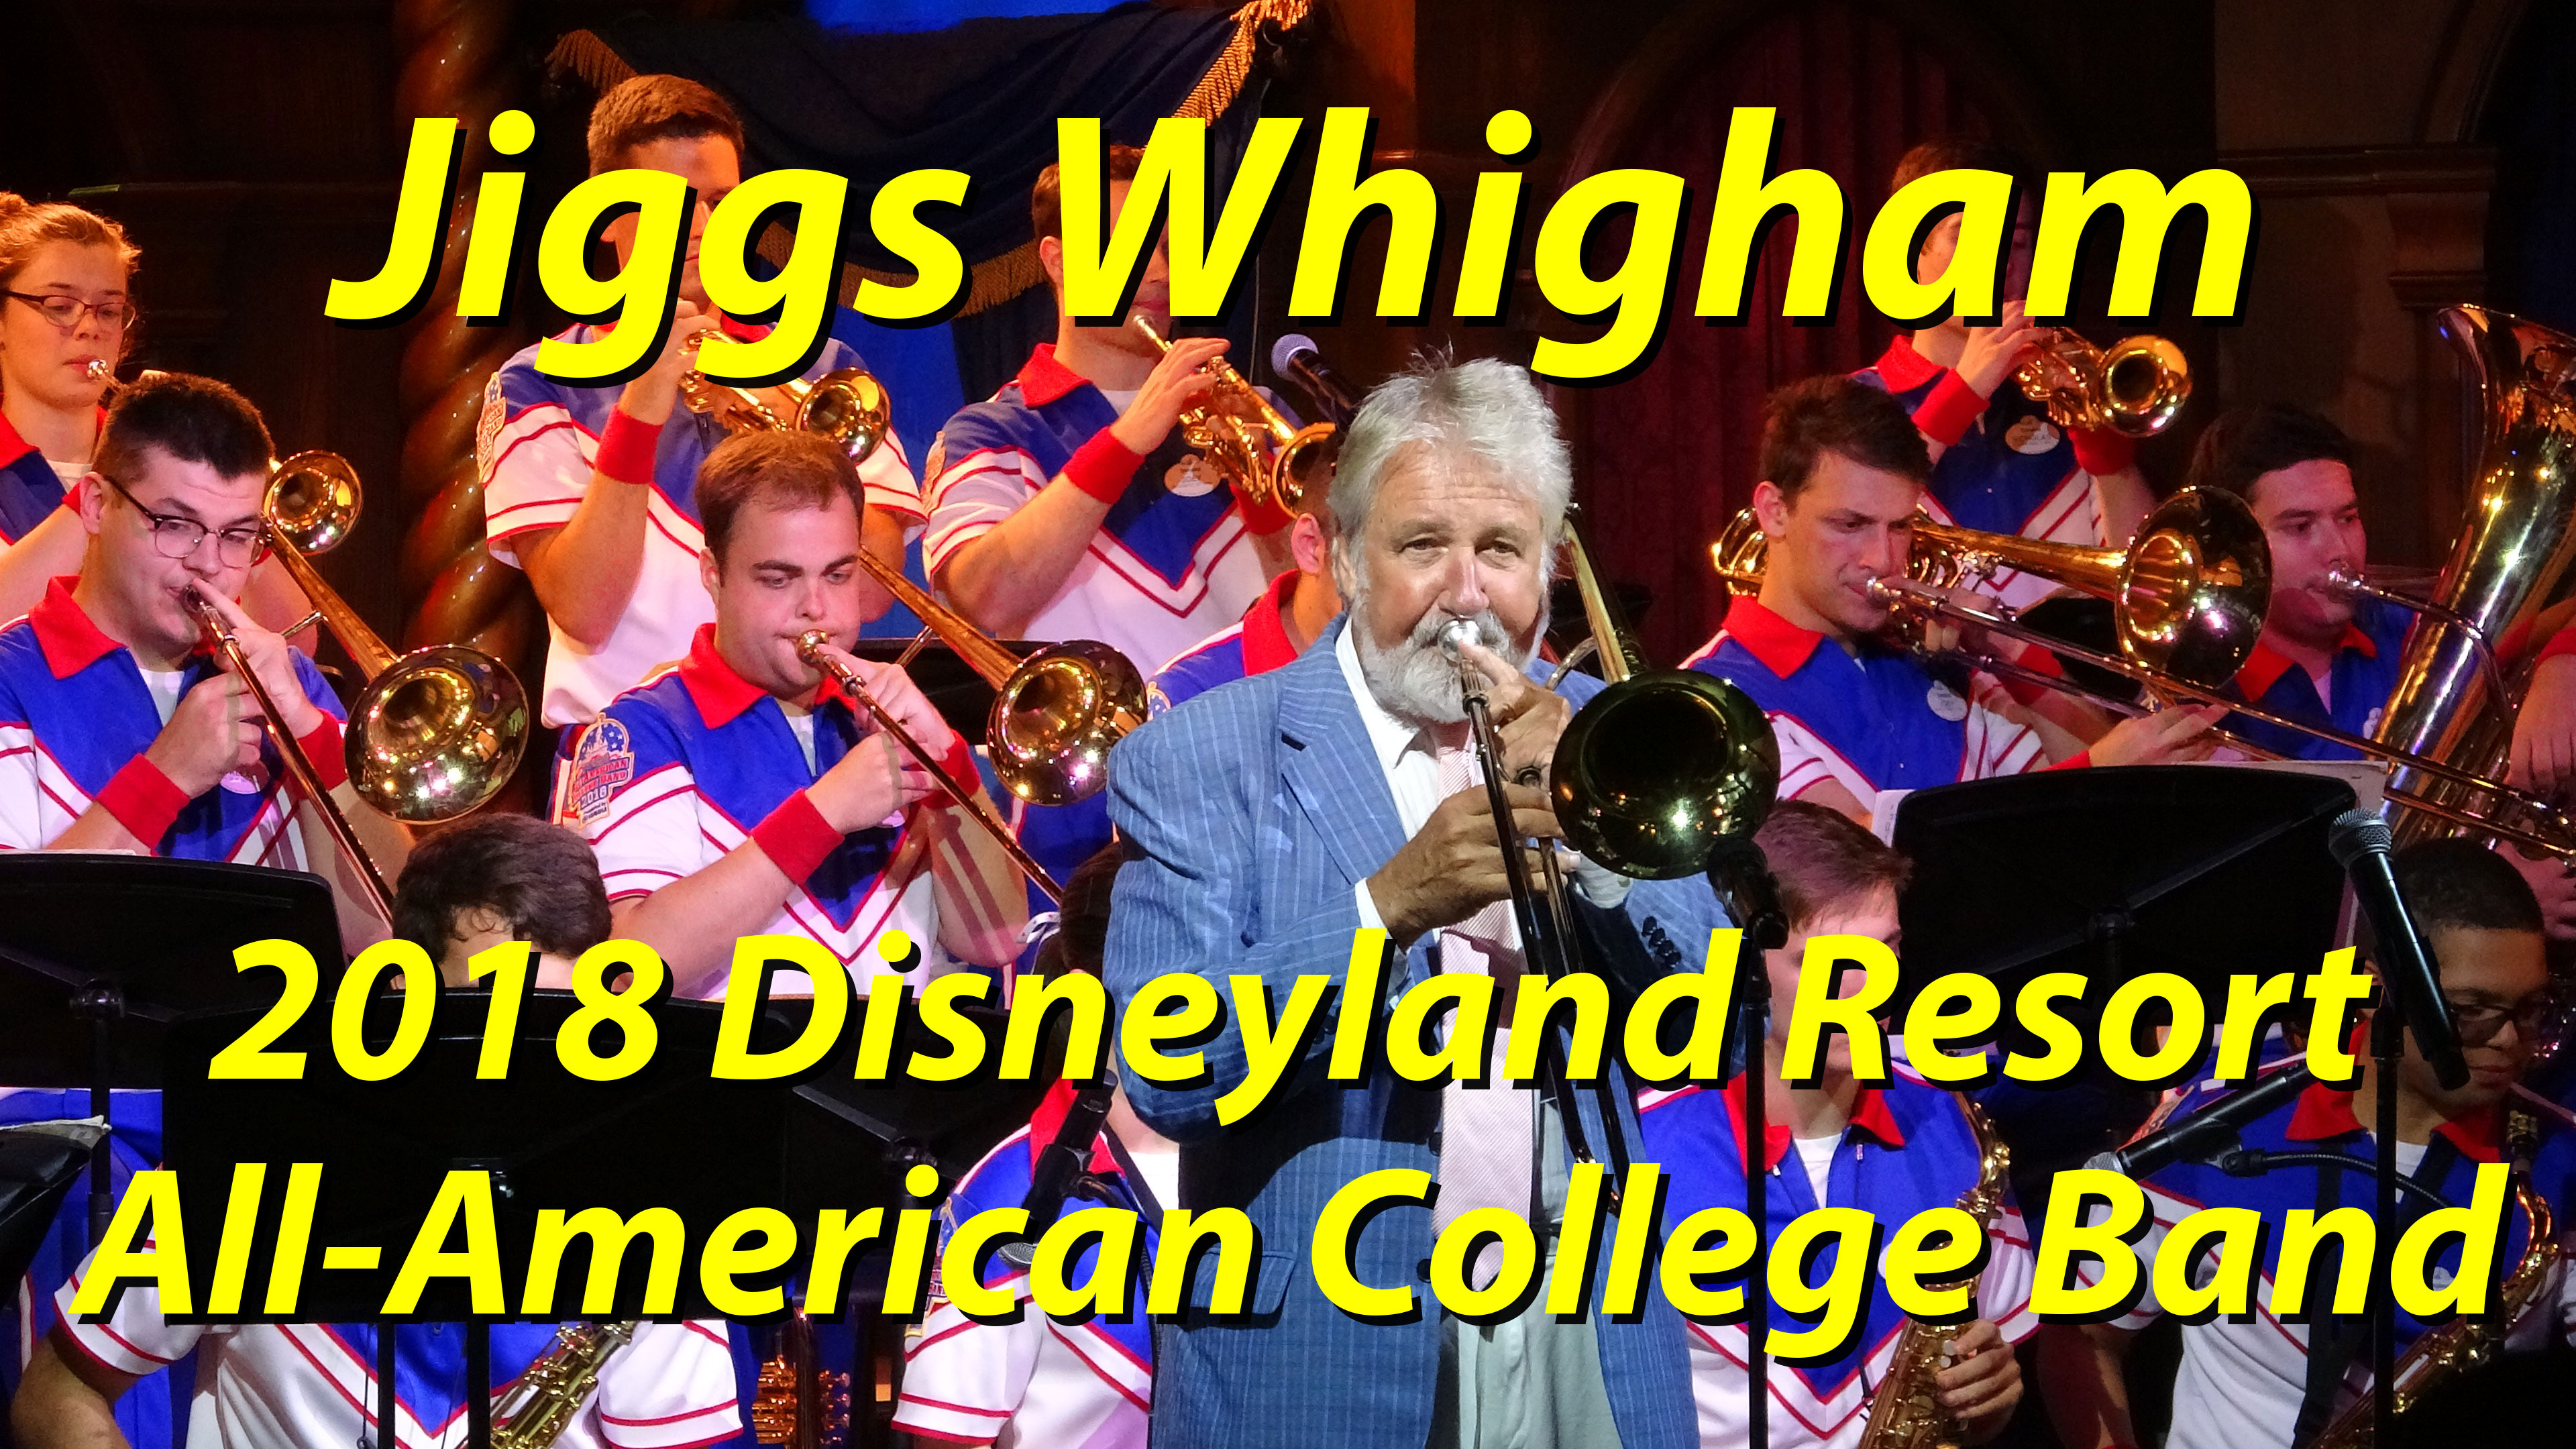 A Night of Humor and Amazing Jazz is Shared by Jiggs Whigham and the 2018 Disneyland Resort All-American College Band